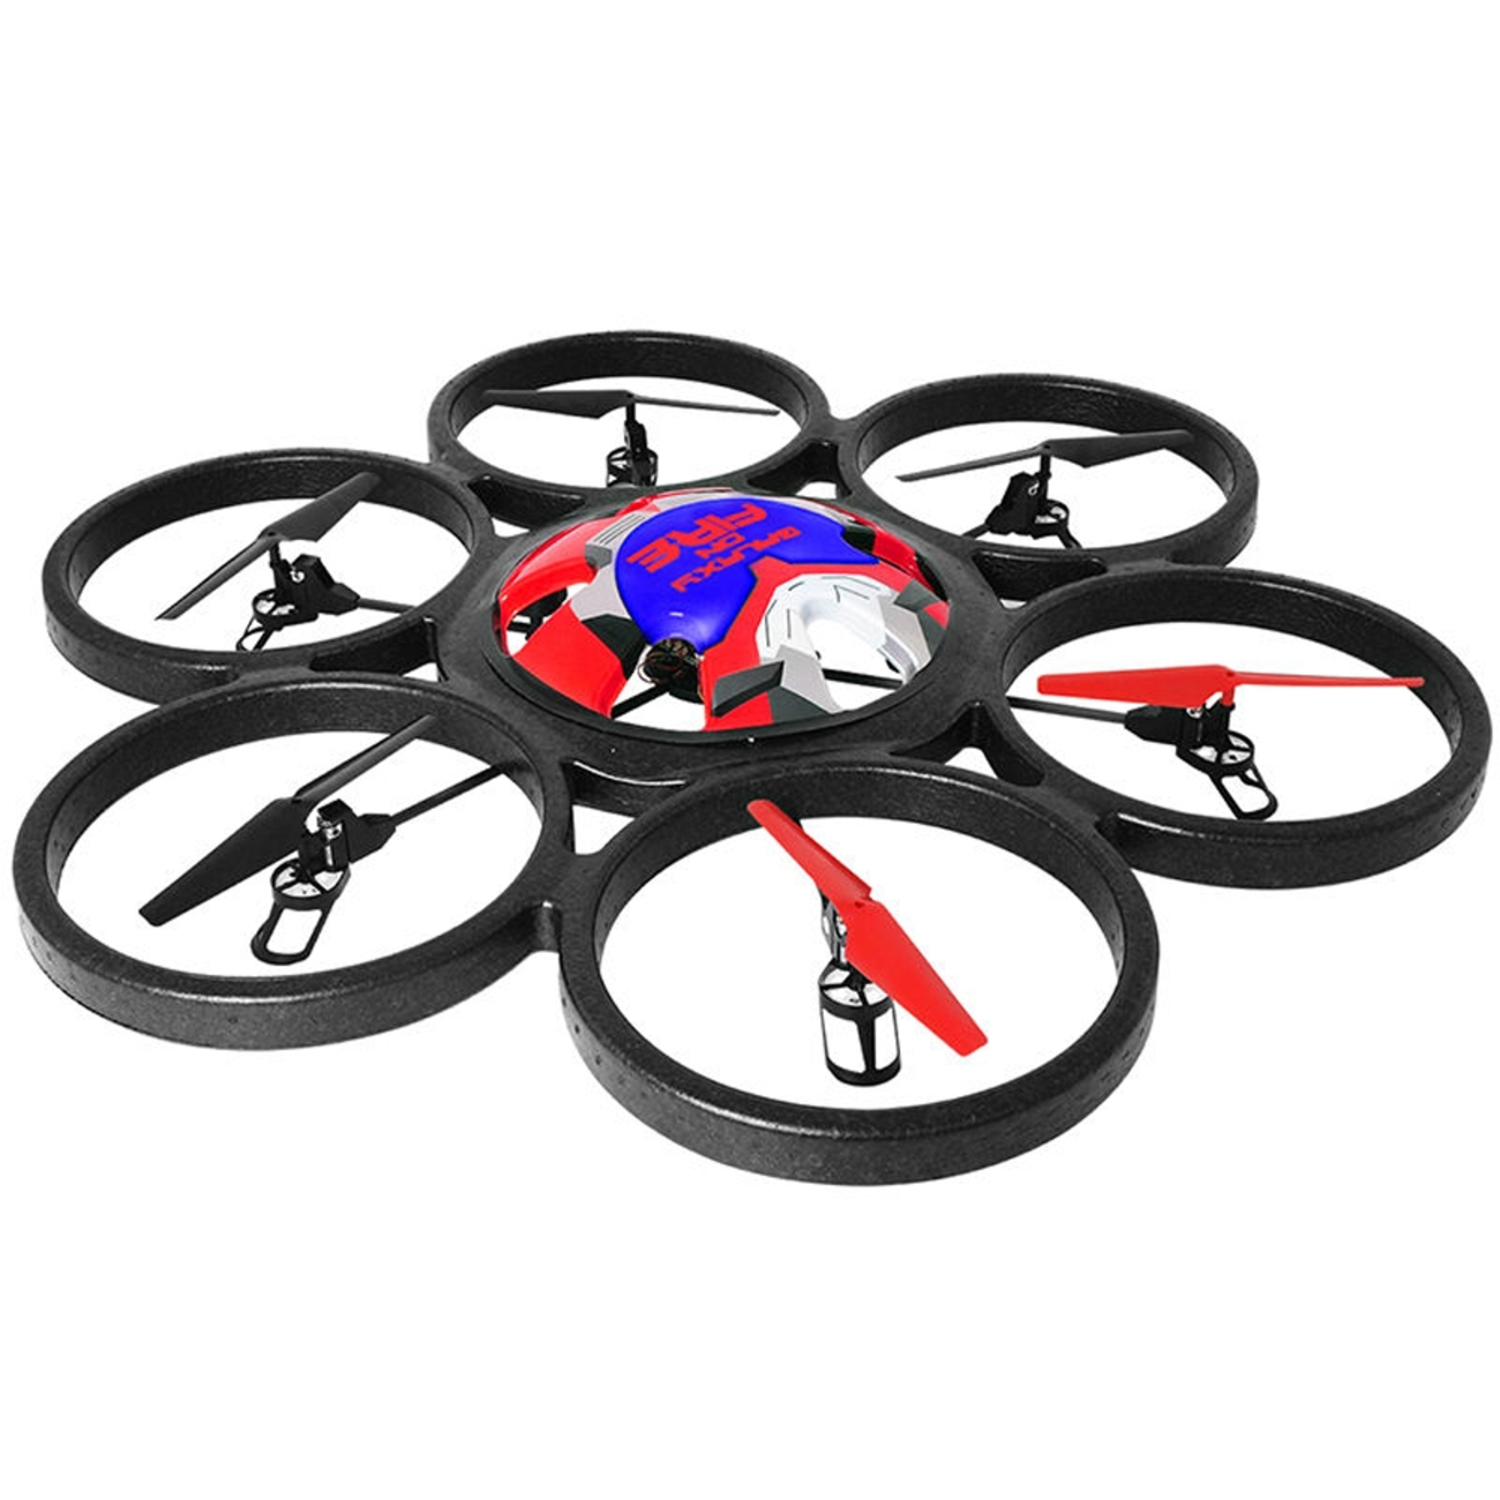 Wltoys V323 2.4GHz 4CH 6 Axis Large Gyro RC Quadcopter Dr...